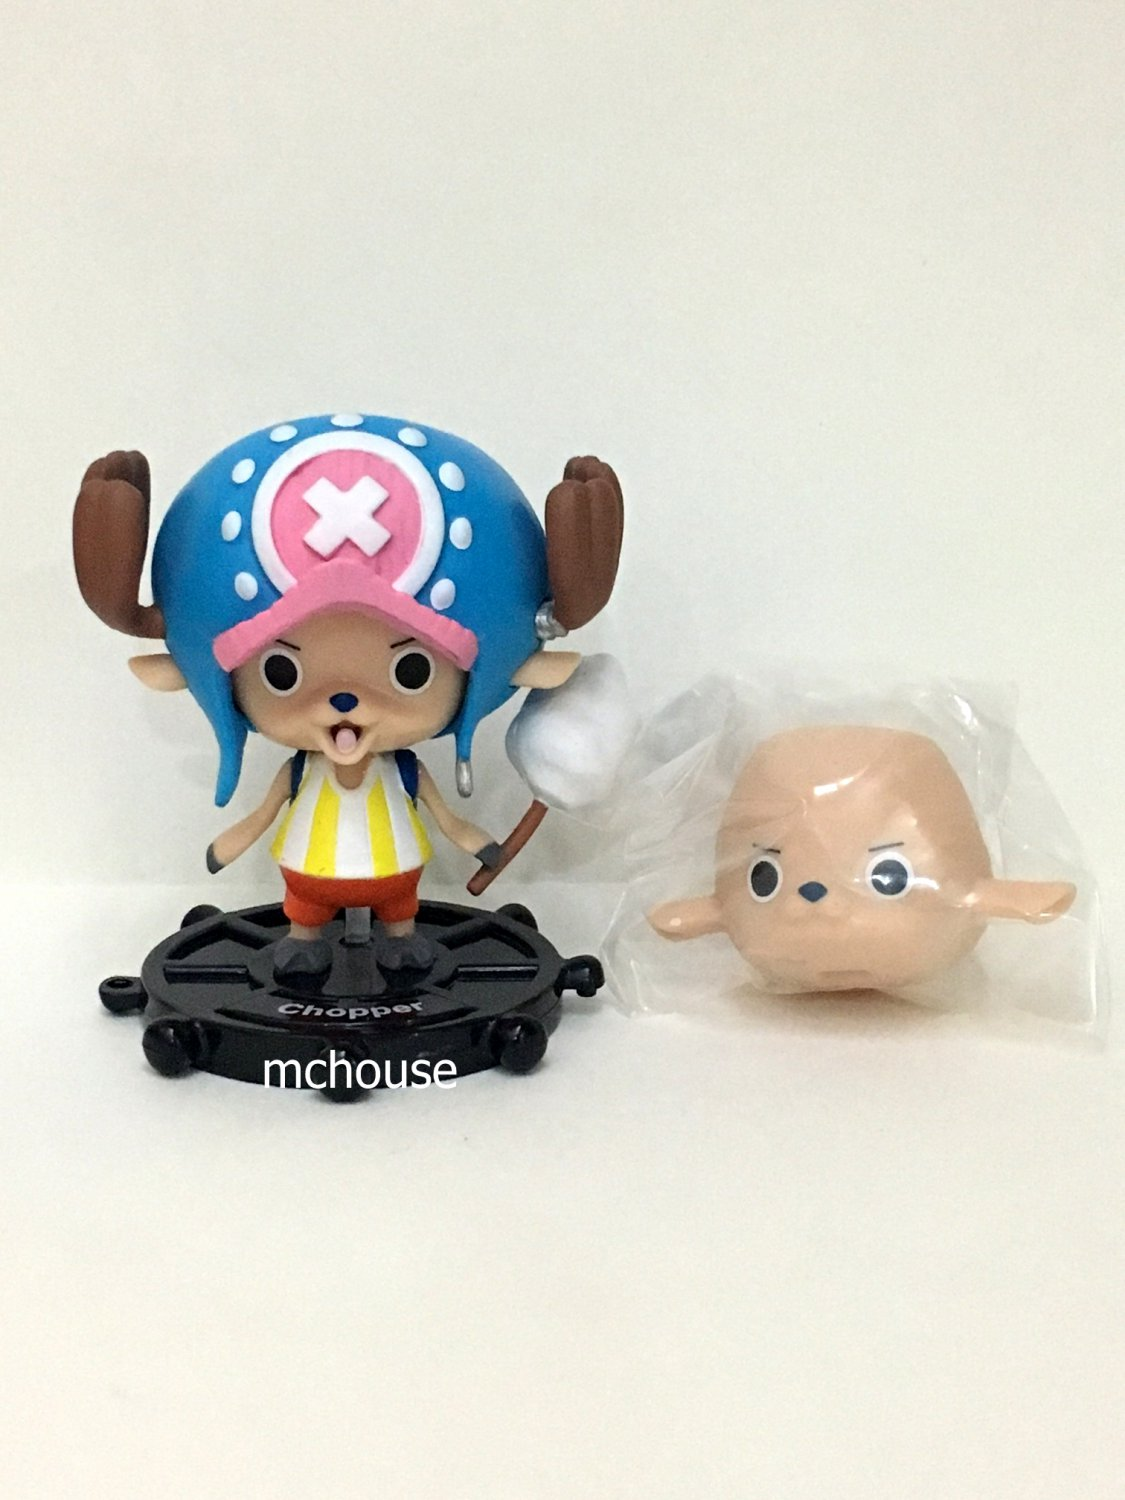 7-11 HK One Piece The New World 2015 Figurine with a prop Chopper